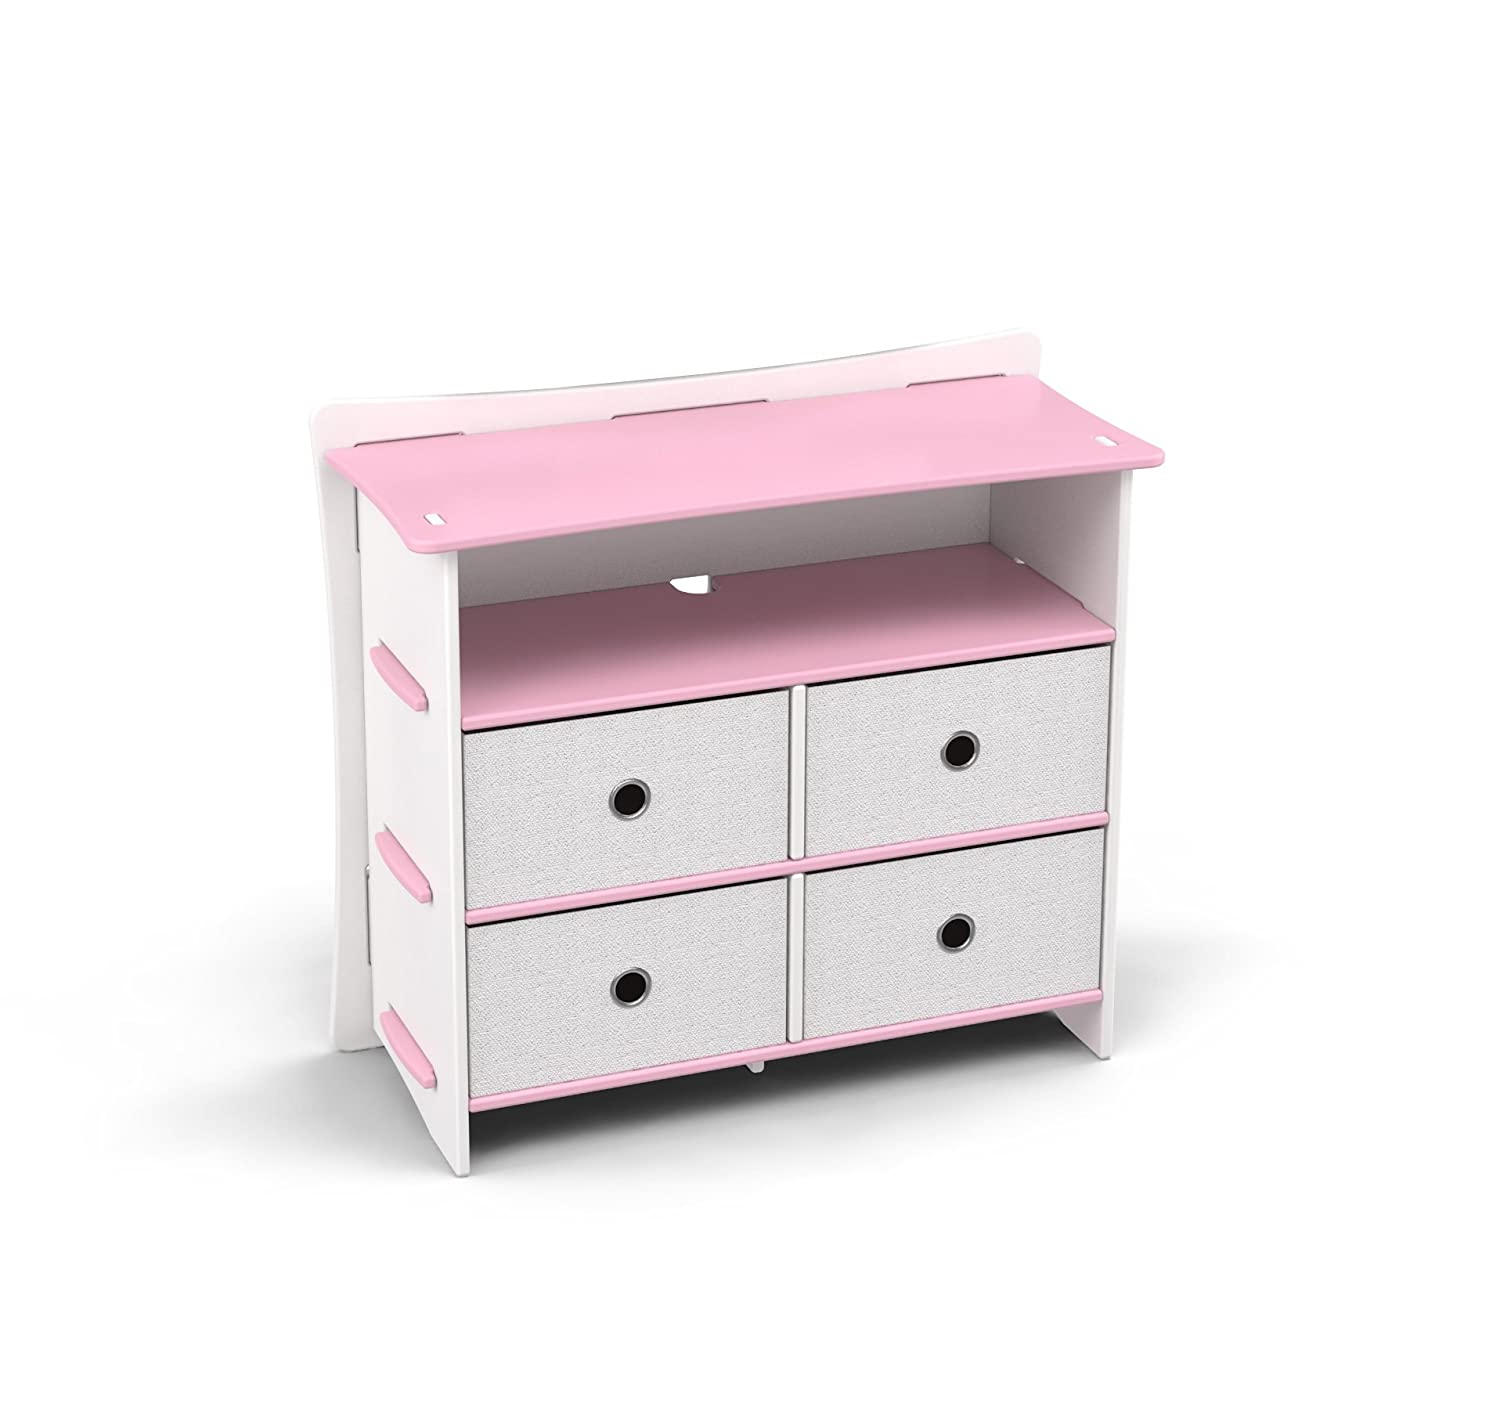 Attirant Amazon.com: Legaré Kids Furniture Princess Series Collection, No Tools  Assembly 4 Drawer Dresser, Pink And White: Kitchen U0026 Dining